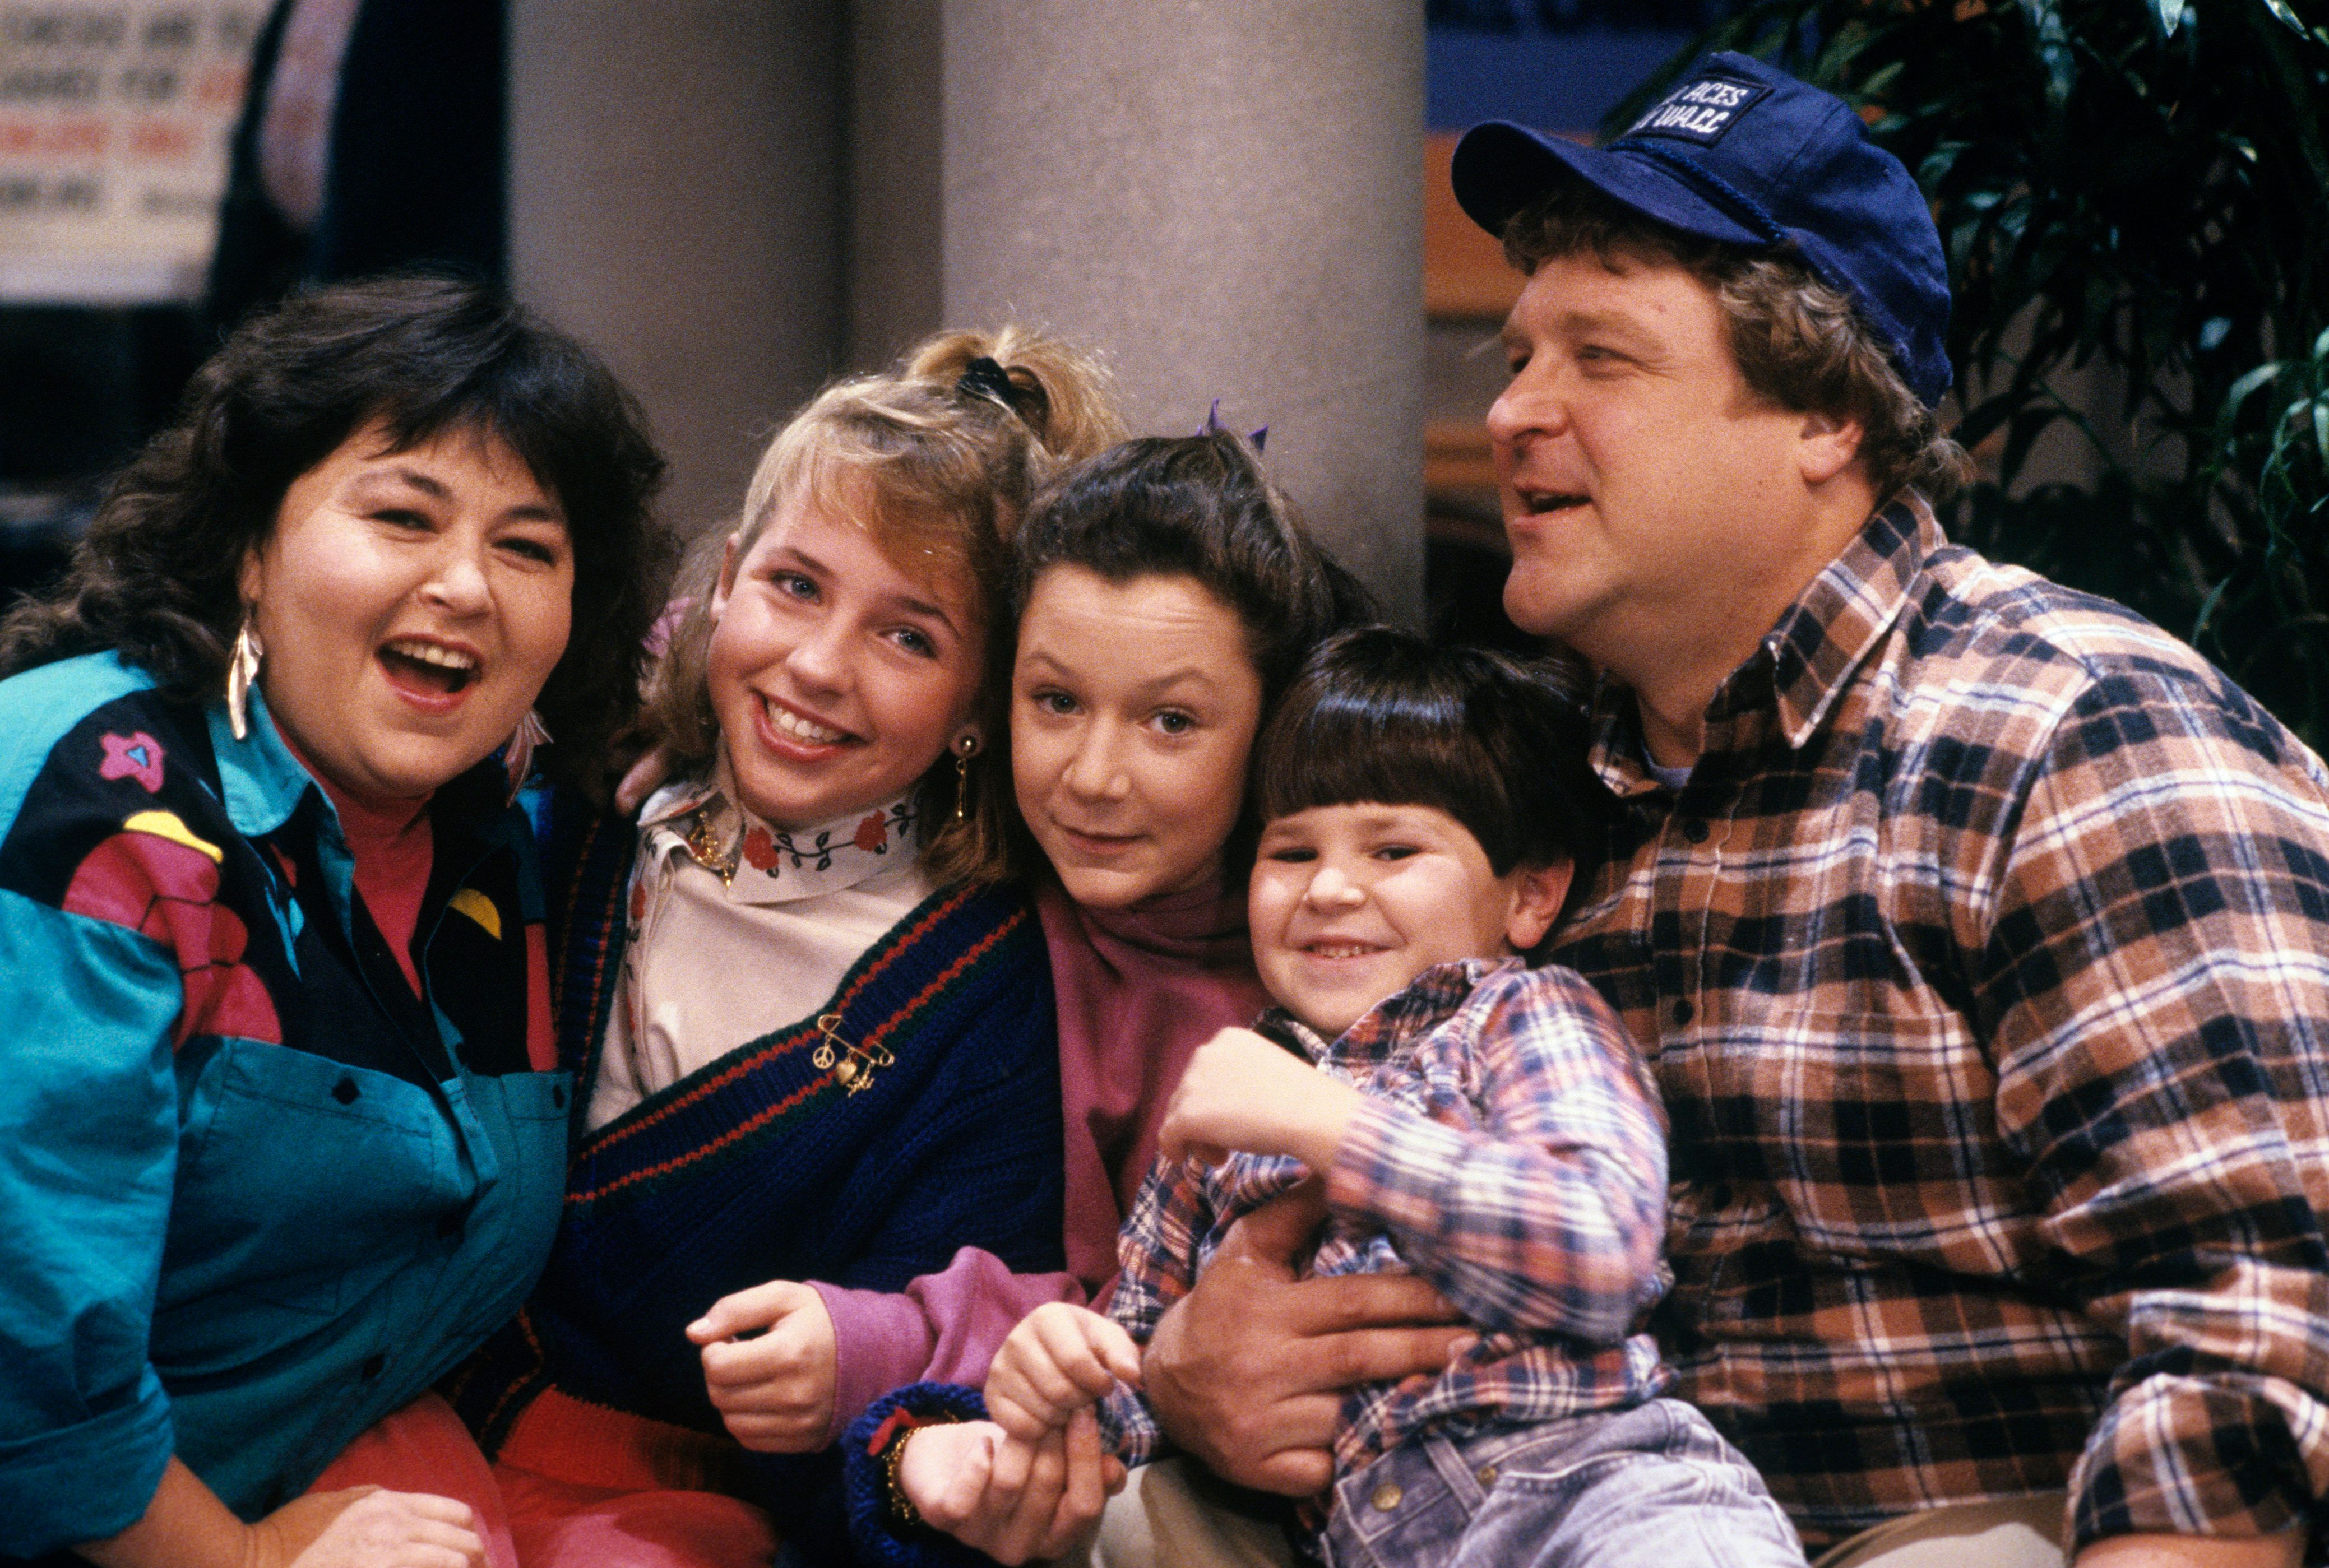 UNITED STATES - JANUARY 28:  ROSEANNE - 'Lovers' Lane' 12/6/88 Roseanne Barr, Alicia Goranson, Sara Gilbert, Michael Fishman, John Goodman  (Photo by ABC Photo Archives/ABC via Getty Images)